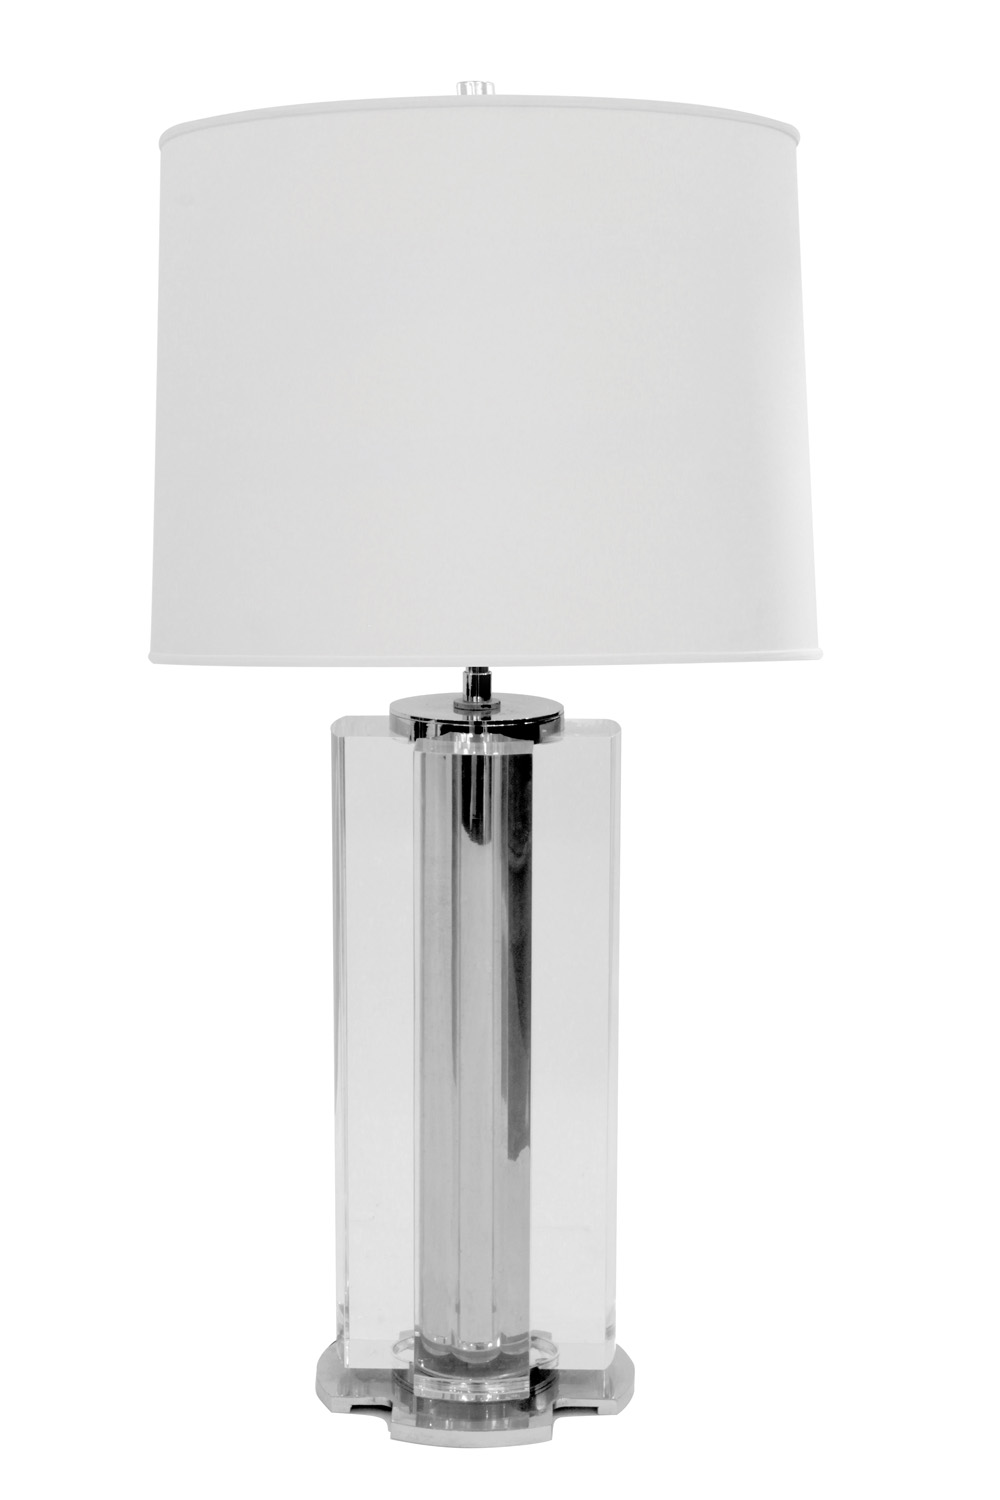 Springer manner 45 3 edge lucite block tablelamp209 hires.jpg